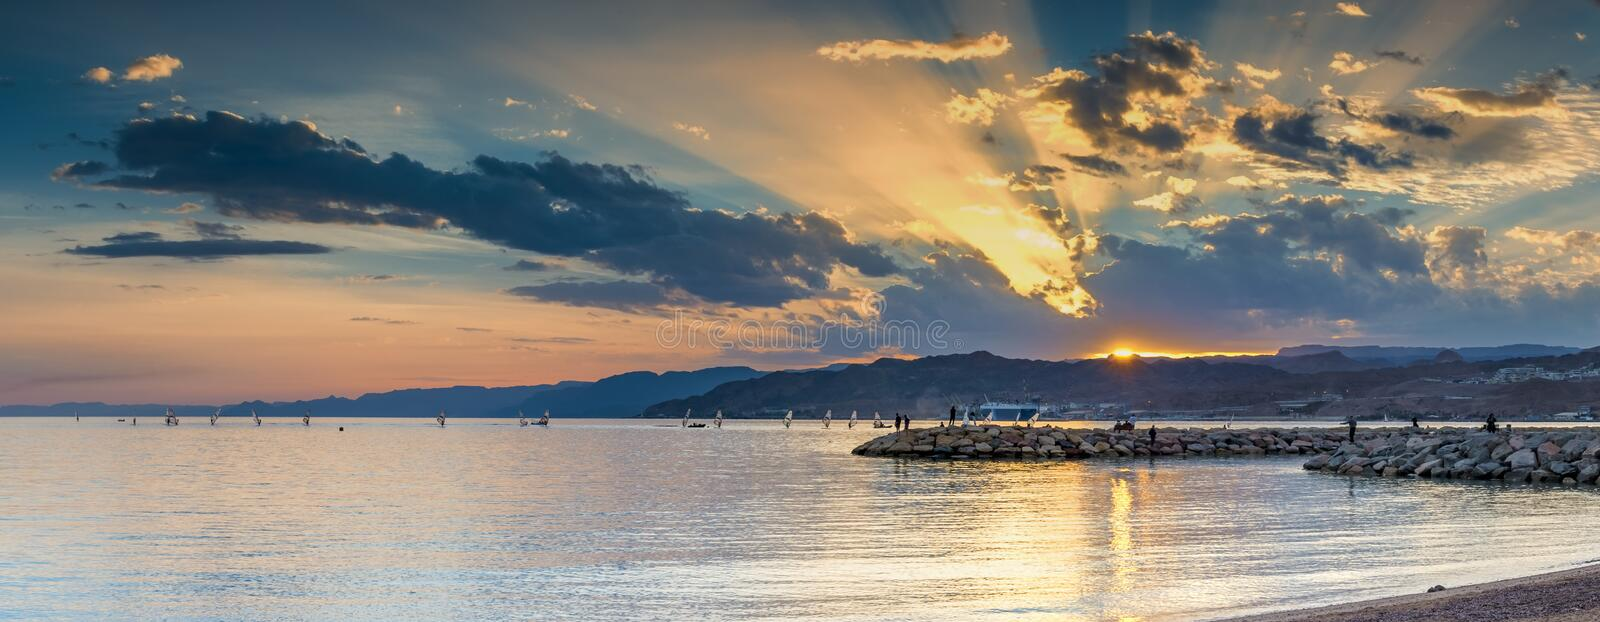 Sunset at a public beach of Eilat - famous resort city in Israel stock image